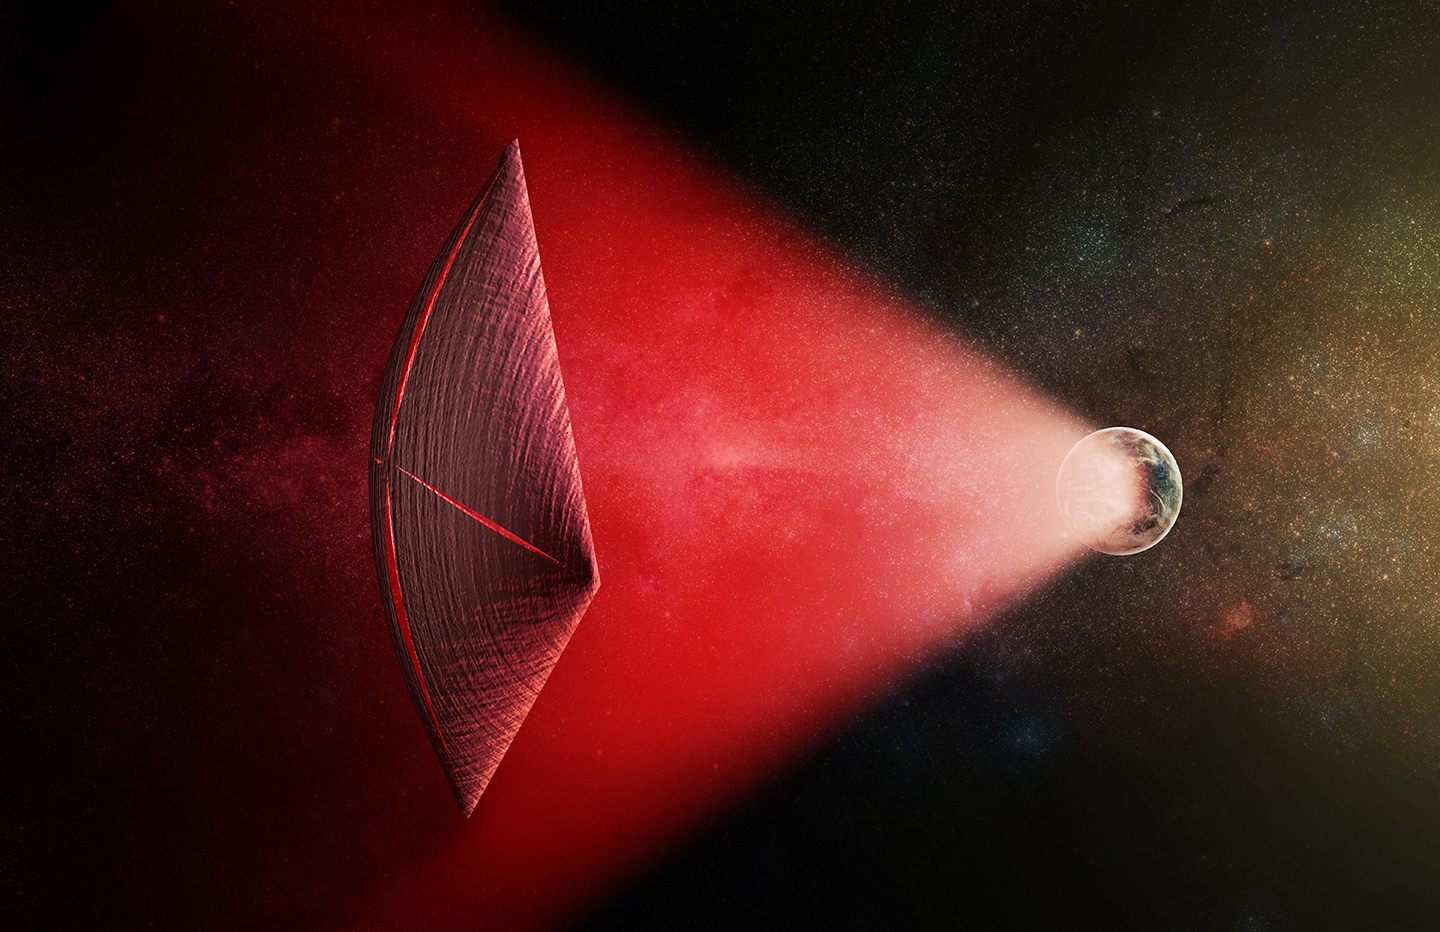 Could Mysterious Cosmic Light Flashes Be Powering Alien Spacecraft?